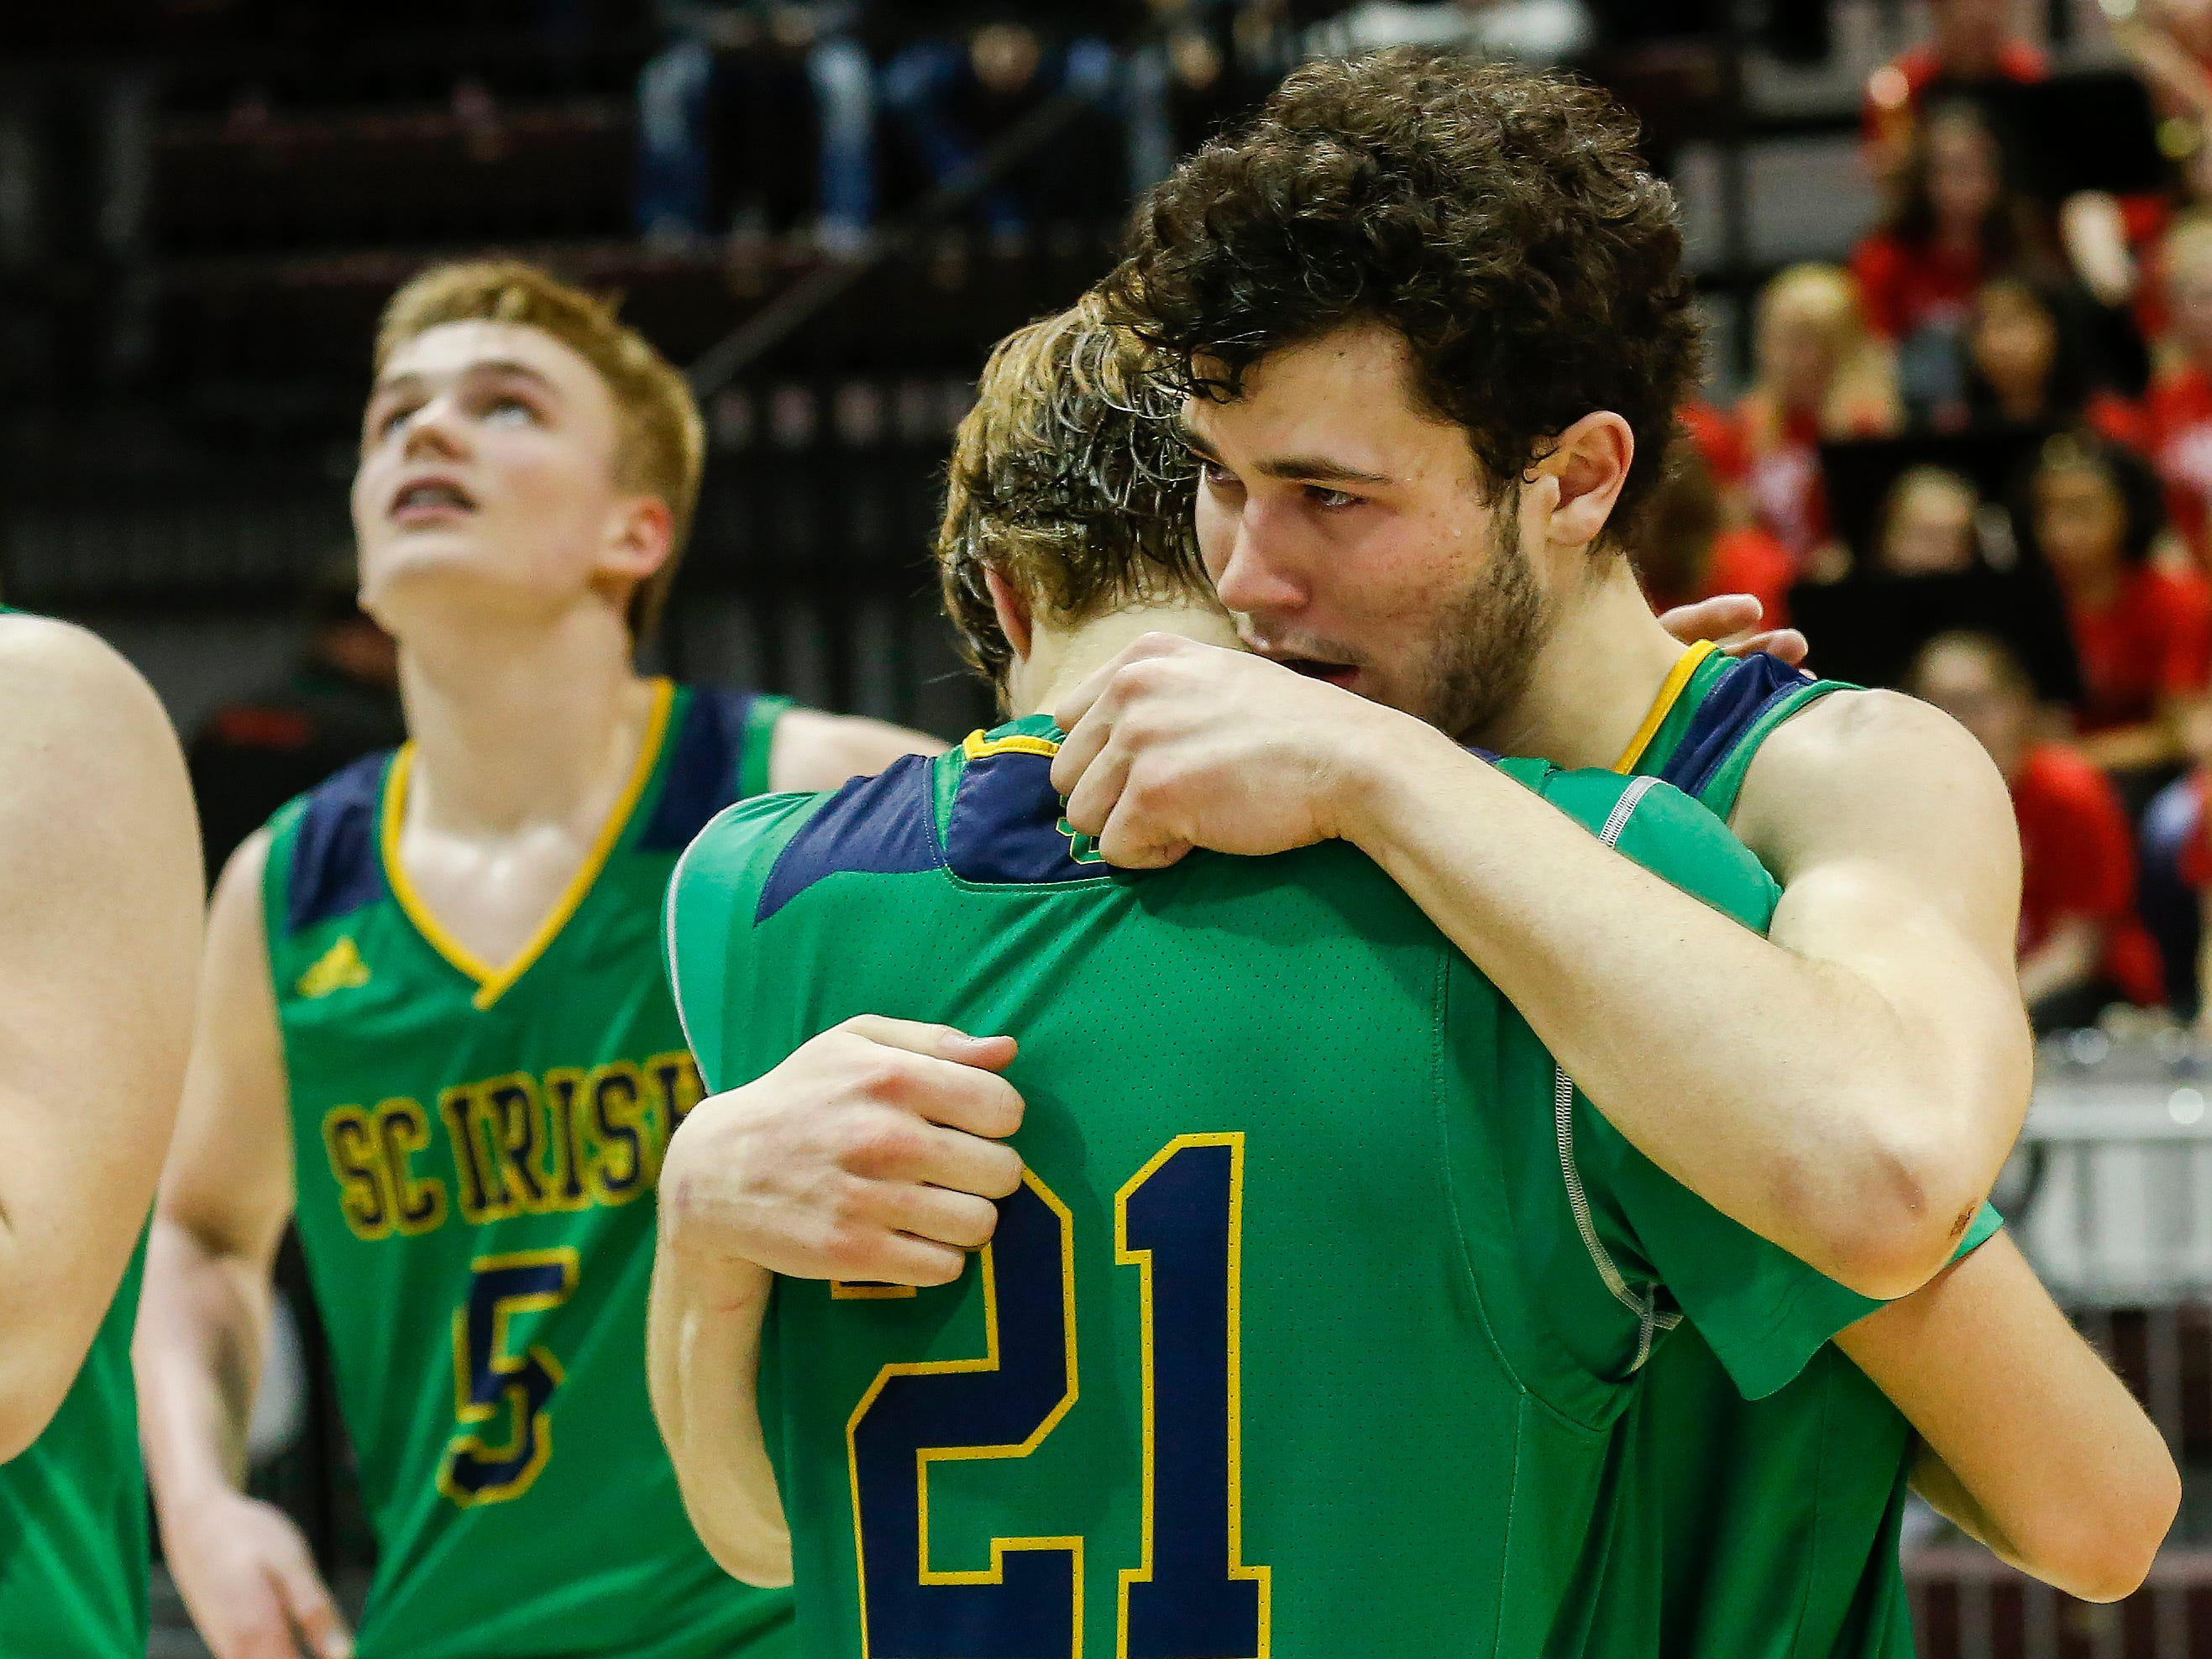 Charlie O'Reilly (21) and Michael Manzardo, of Springfield Catholic, console each other after the Irish's 69-59 loss to Vashon in the Class 3 state championship game at JQH Arena on Friday, March 8, 2019.